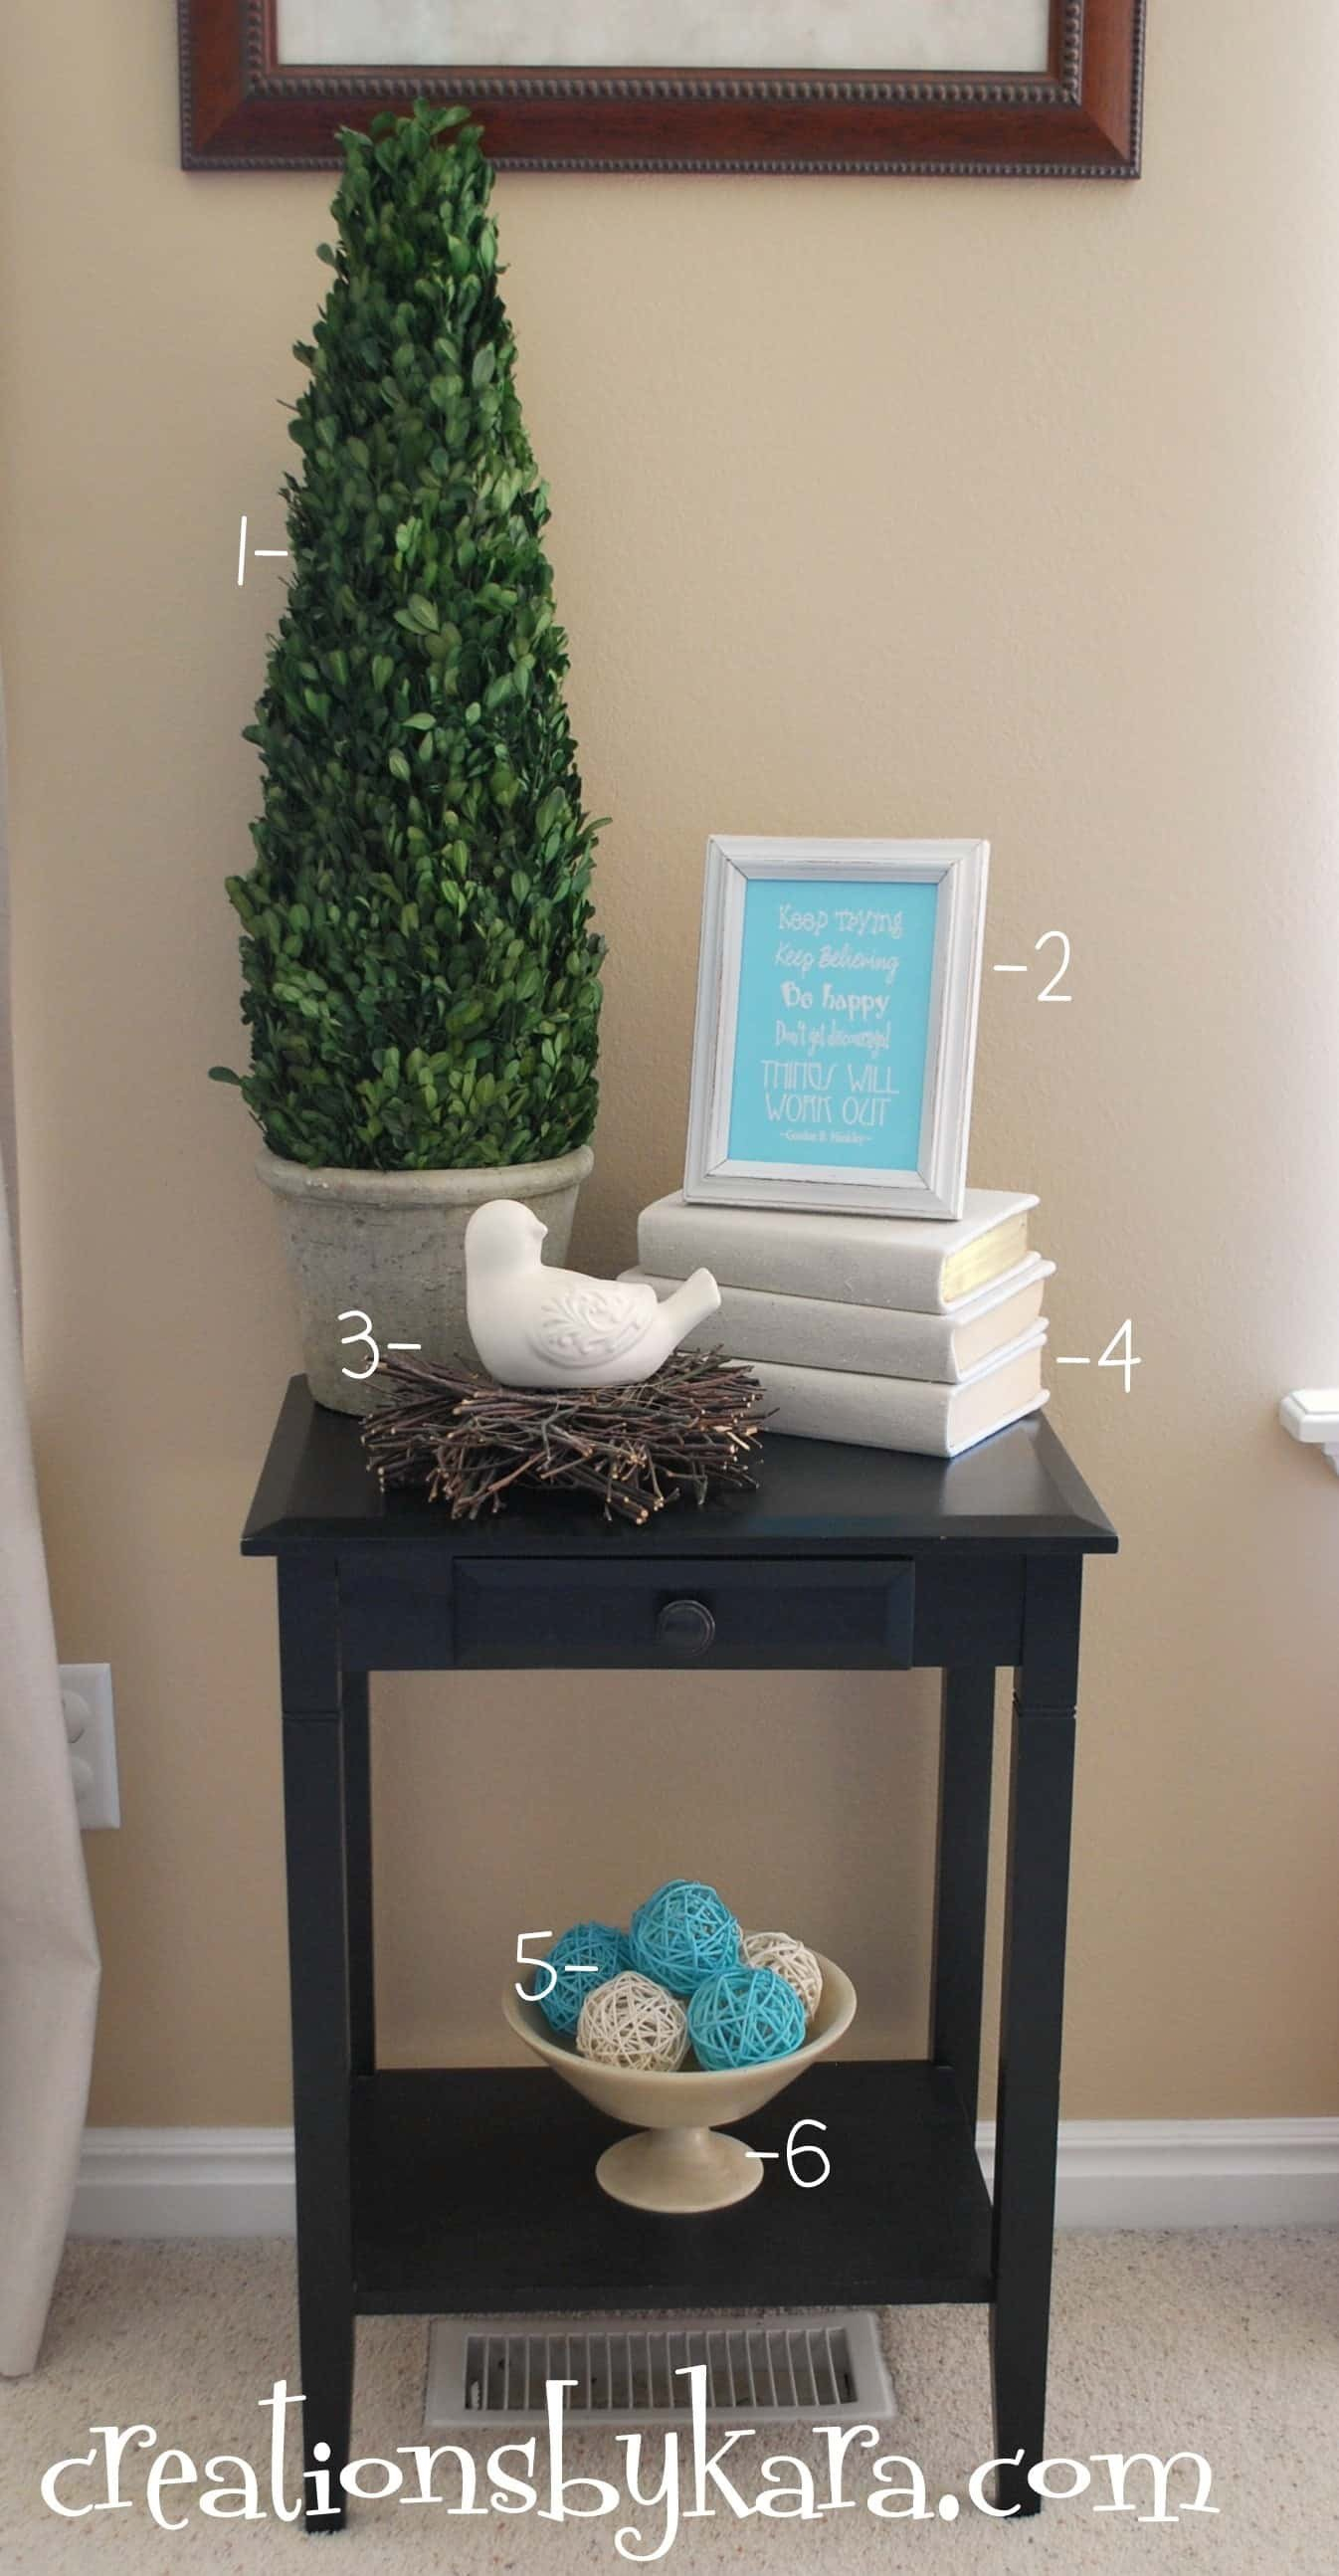 Table Decor for Living Room Diy Decorating Living Room Table Creations by Kara